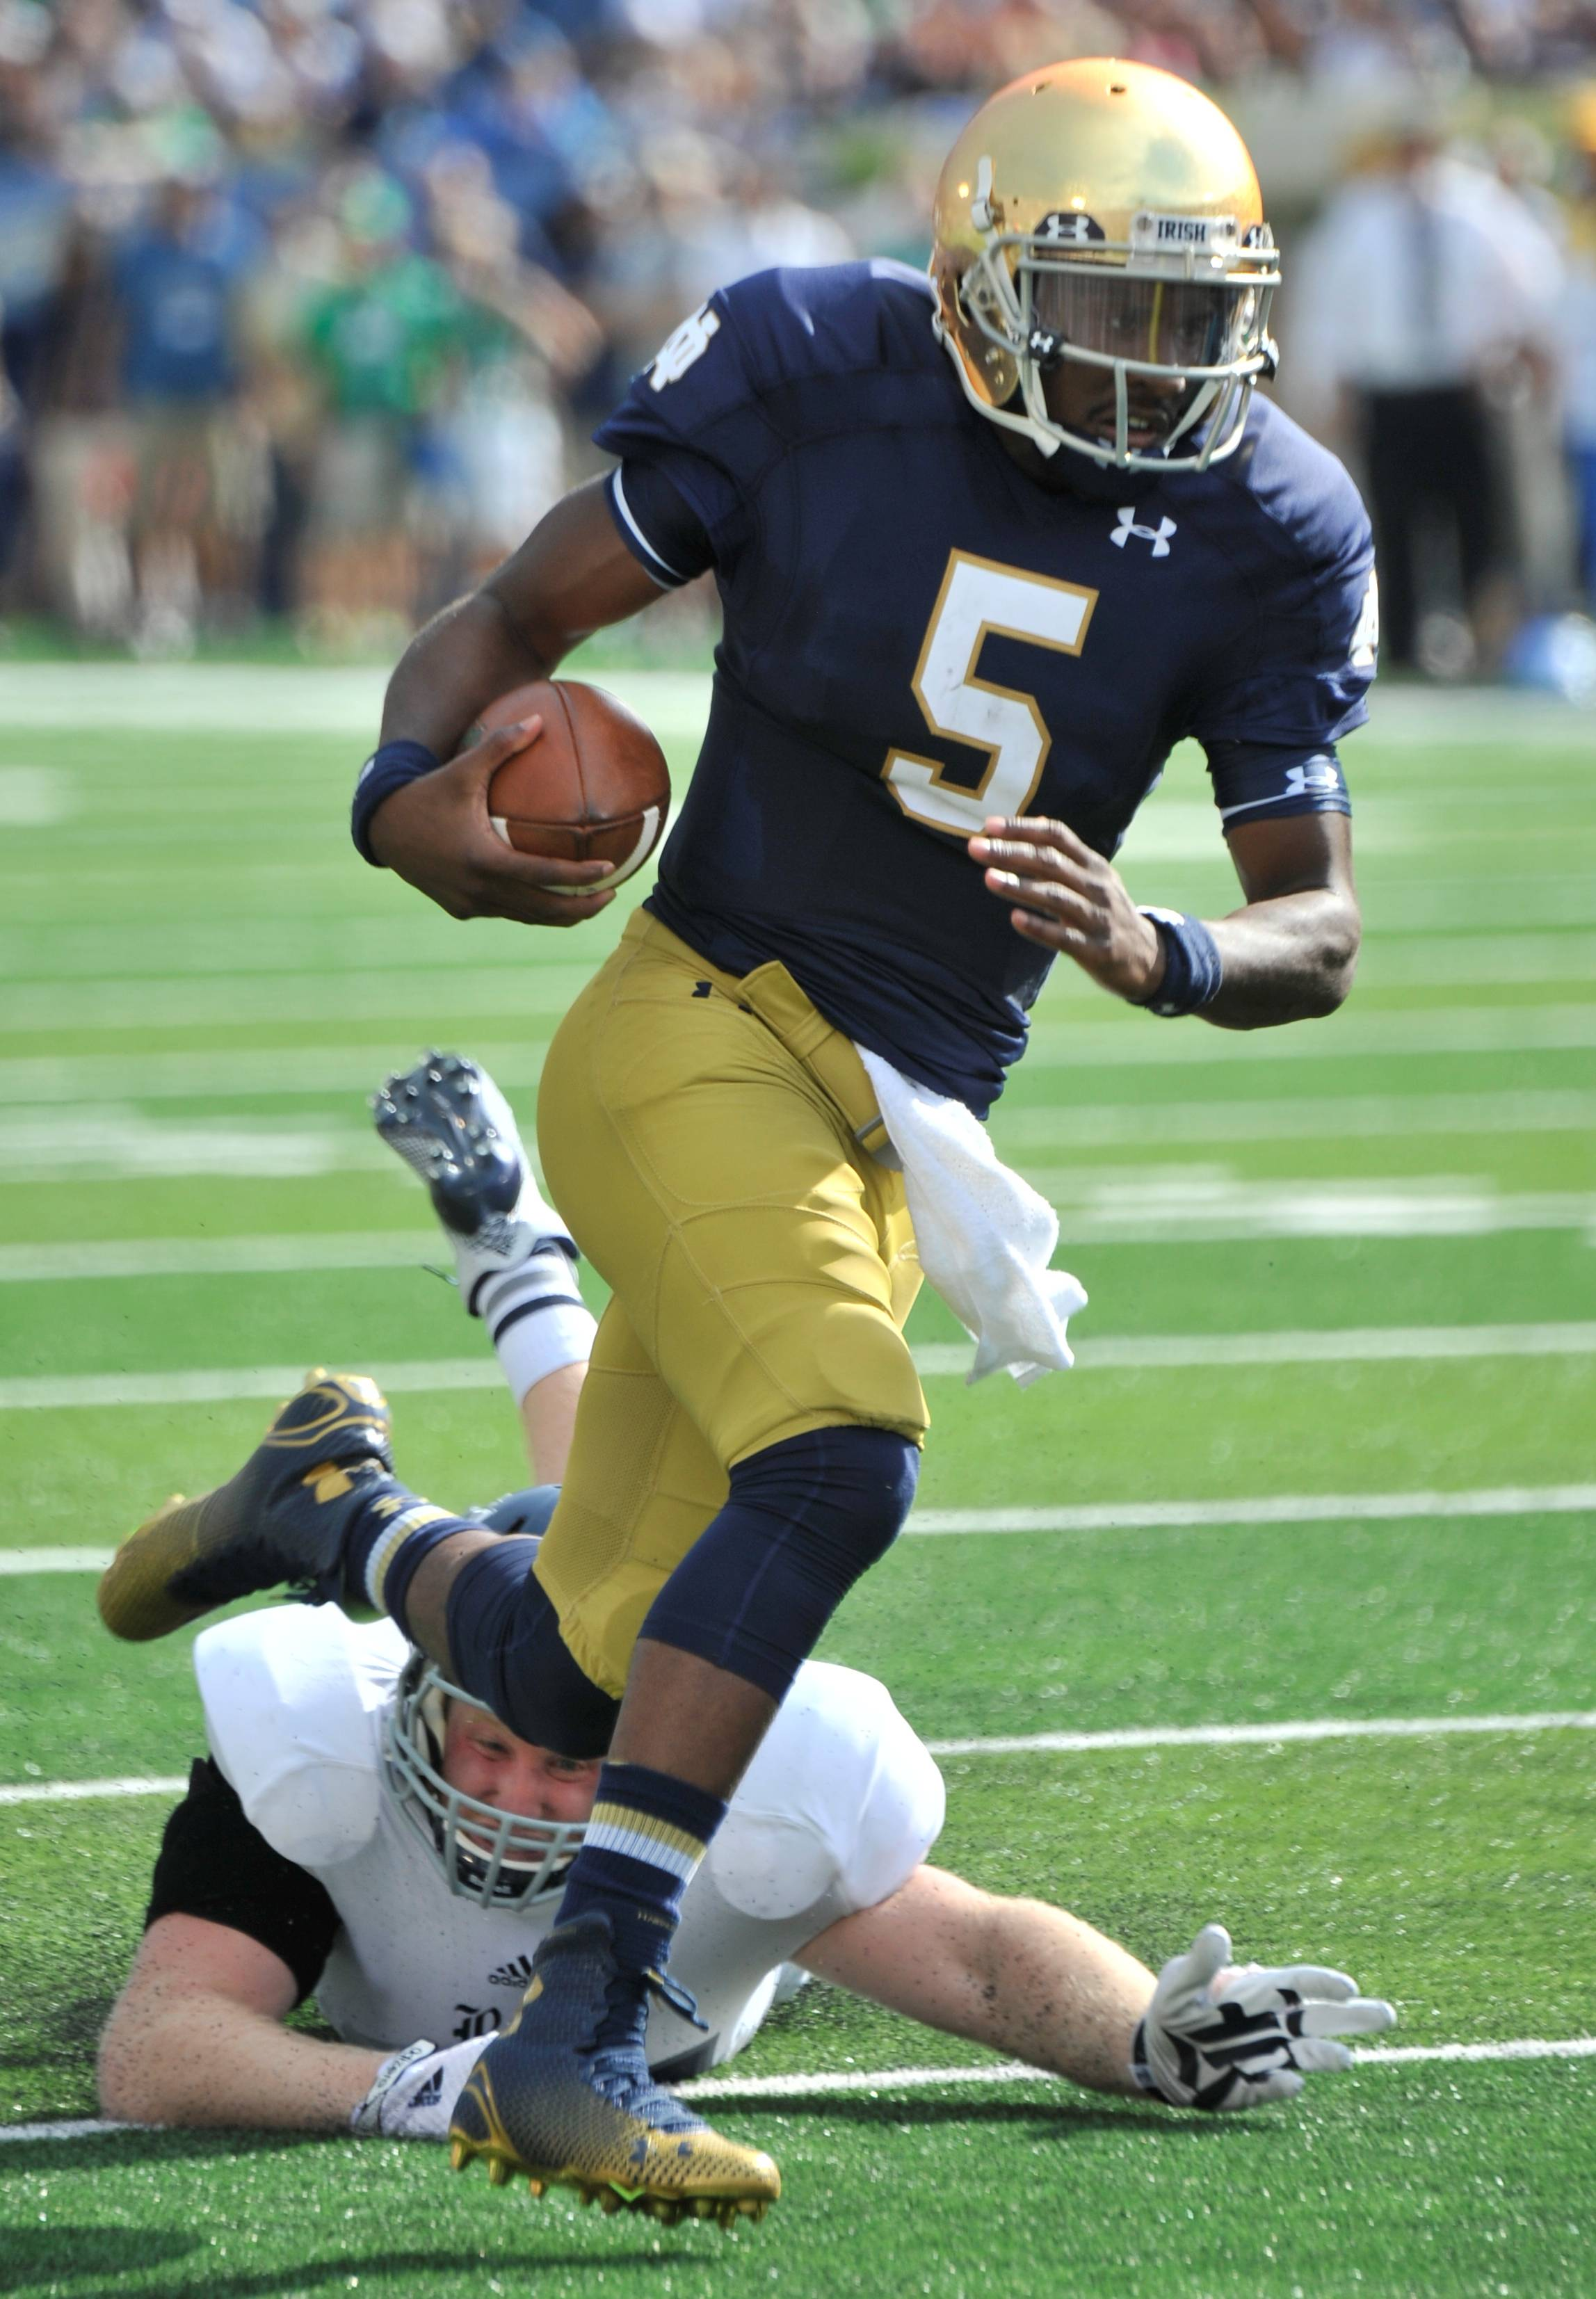 Notre Dame quarterback Everett Golson (5) heads toward the end zone during Saturday's game with Rice in South Bend, Ind. Notre Dame won 48-17.